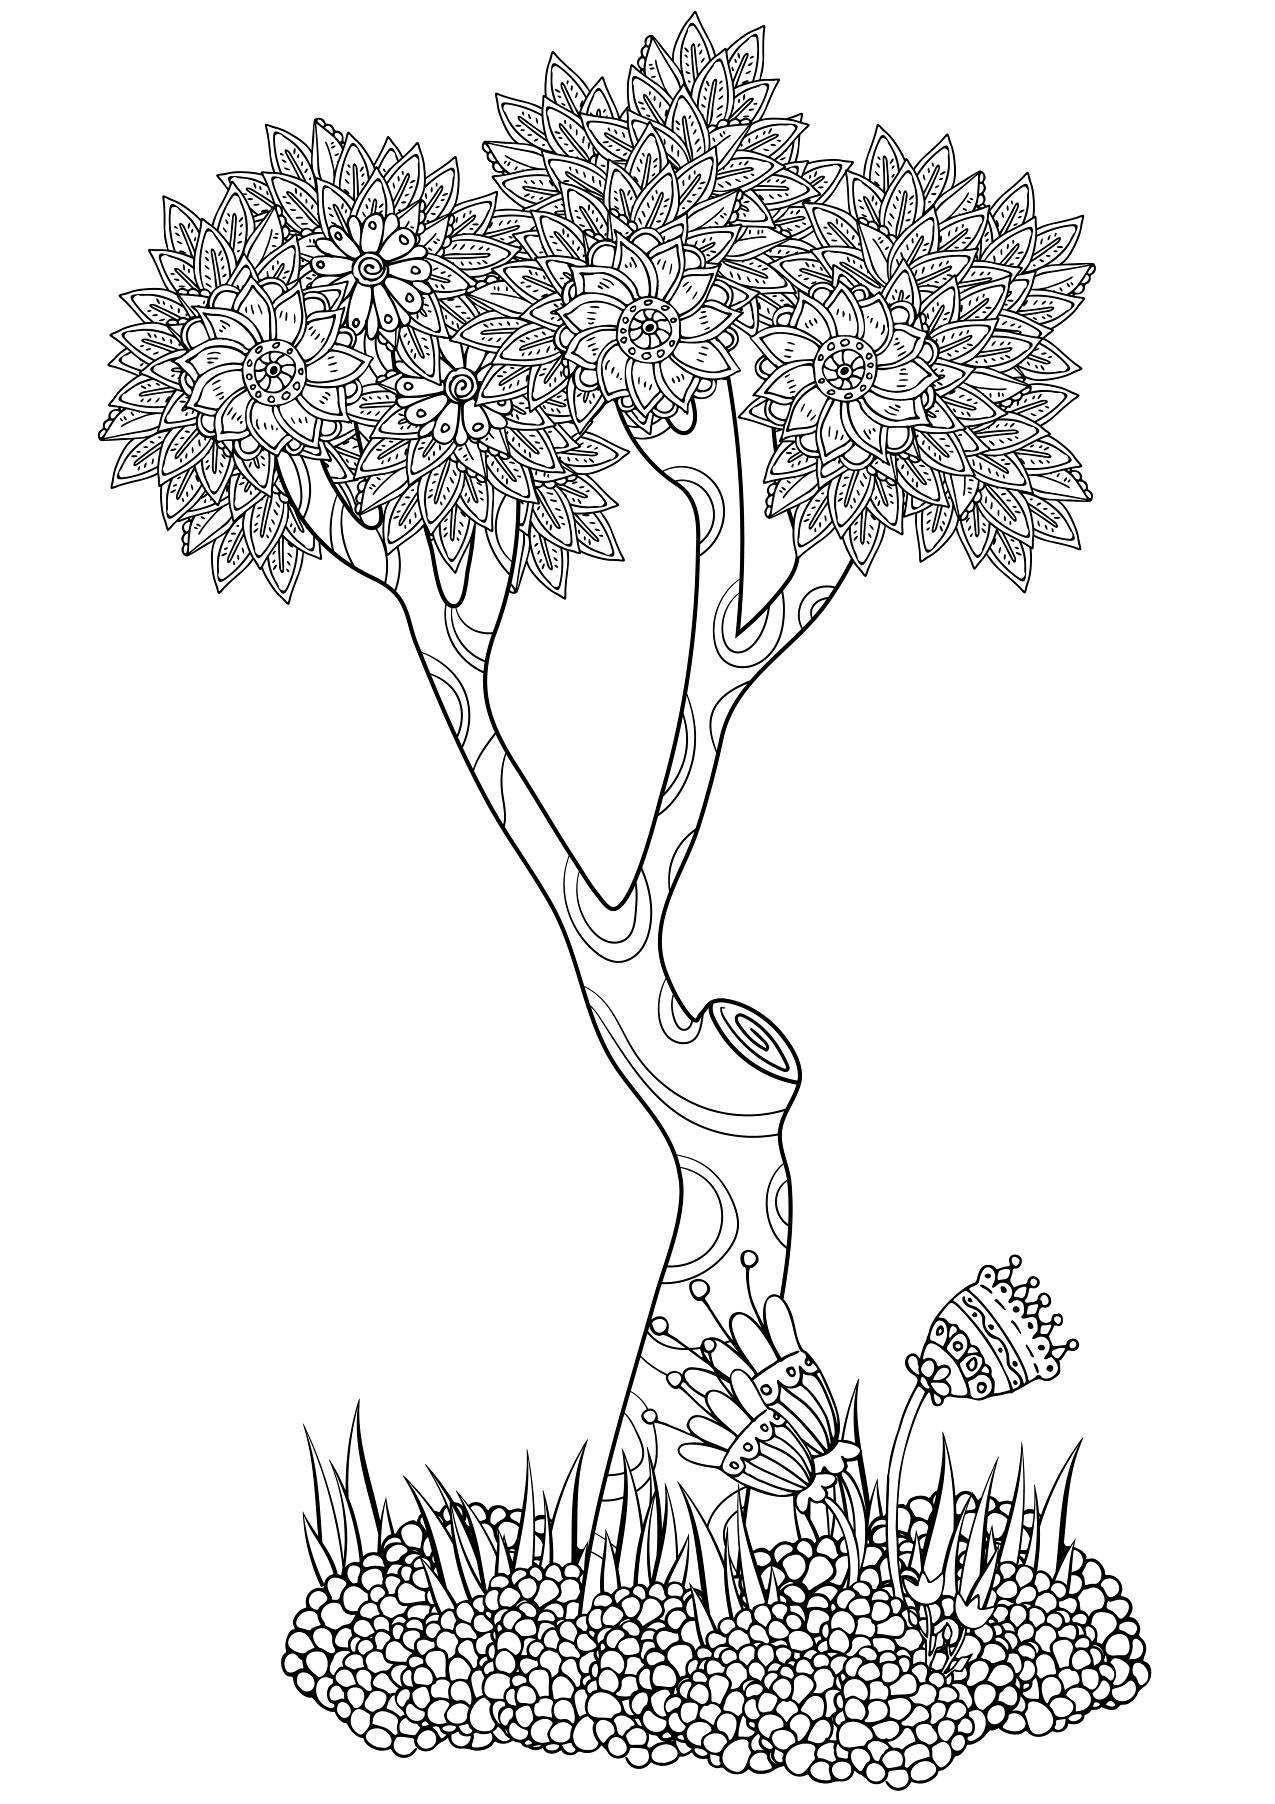 Abstract Tree Coloring Pages | Bgcentrum for Abstract Tree Coloring Pages  75tgx